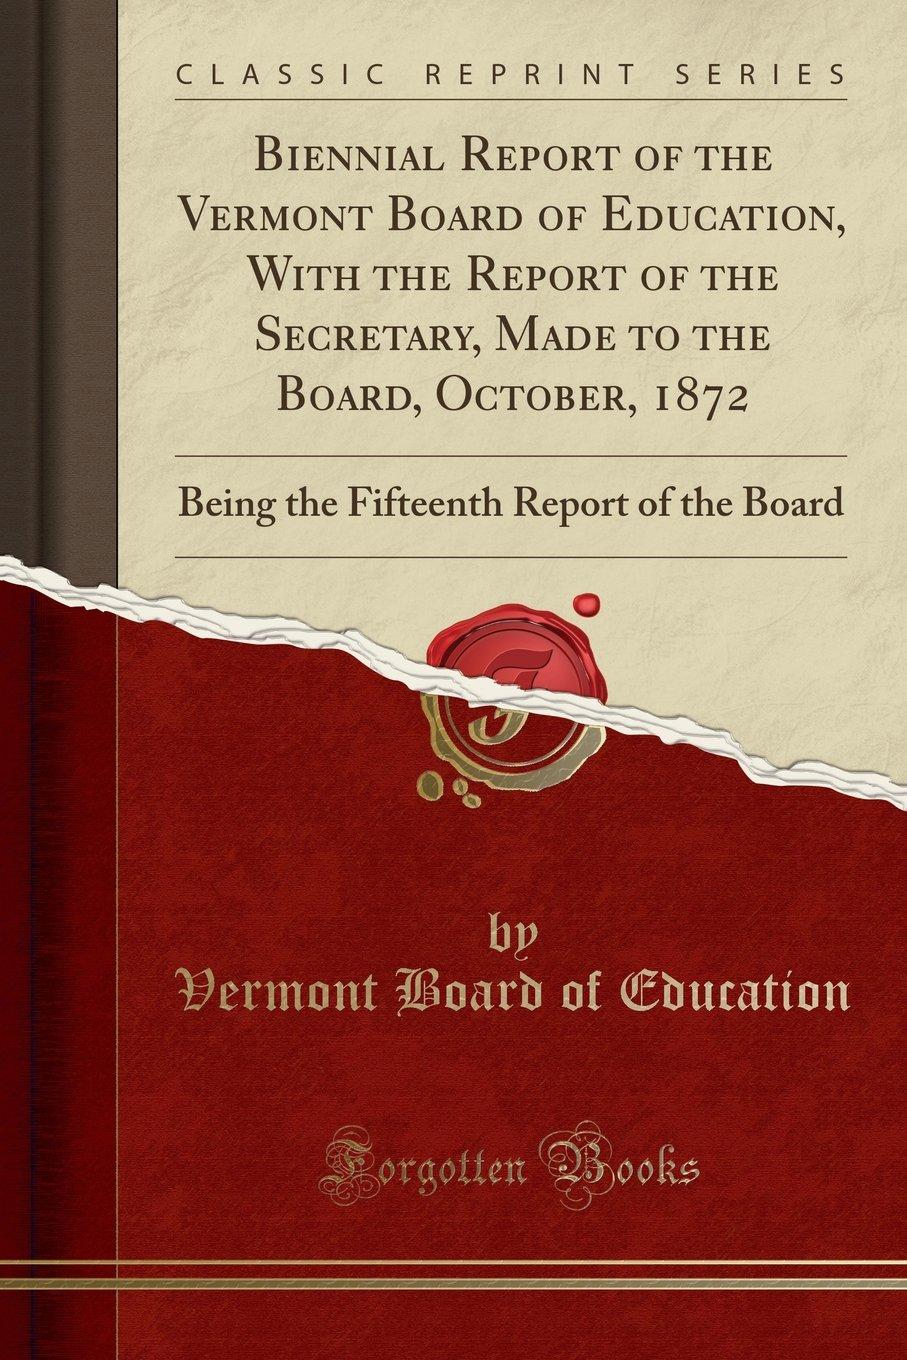 Biennial Report of the Vermont Board of Education, With the Report of the Secretary, Made to the Board, October, 1872: Being the Fifteenth Report of the Board (Classic Reprint) pdf epub